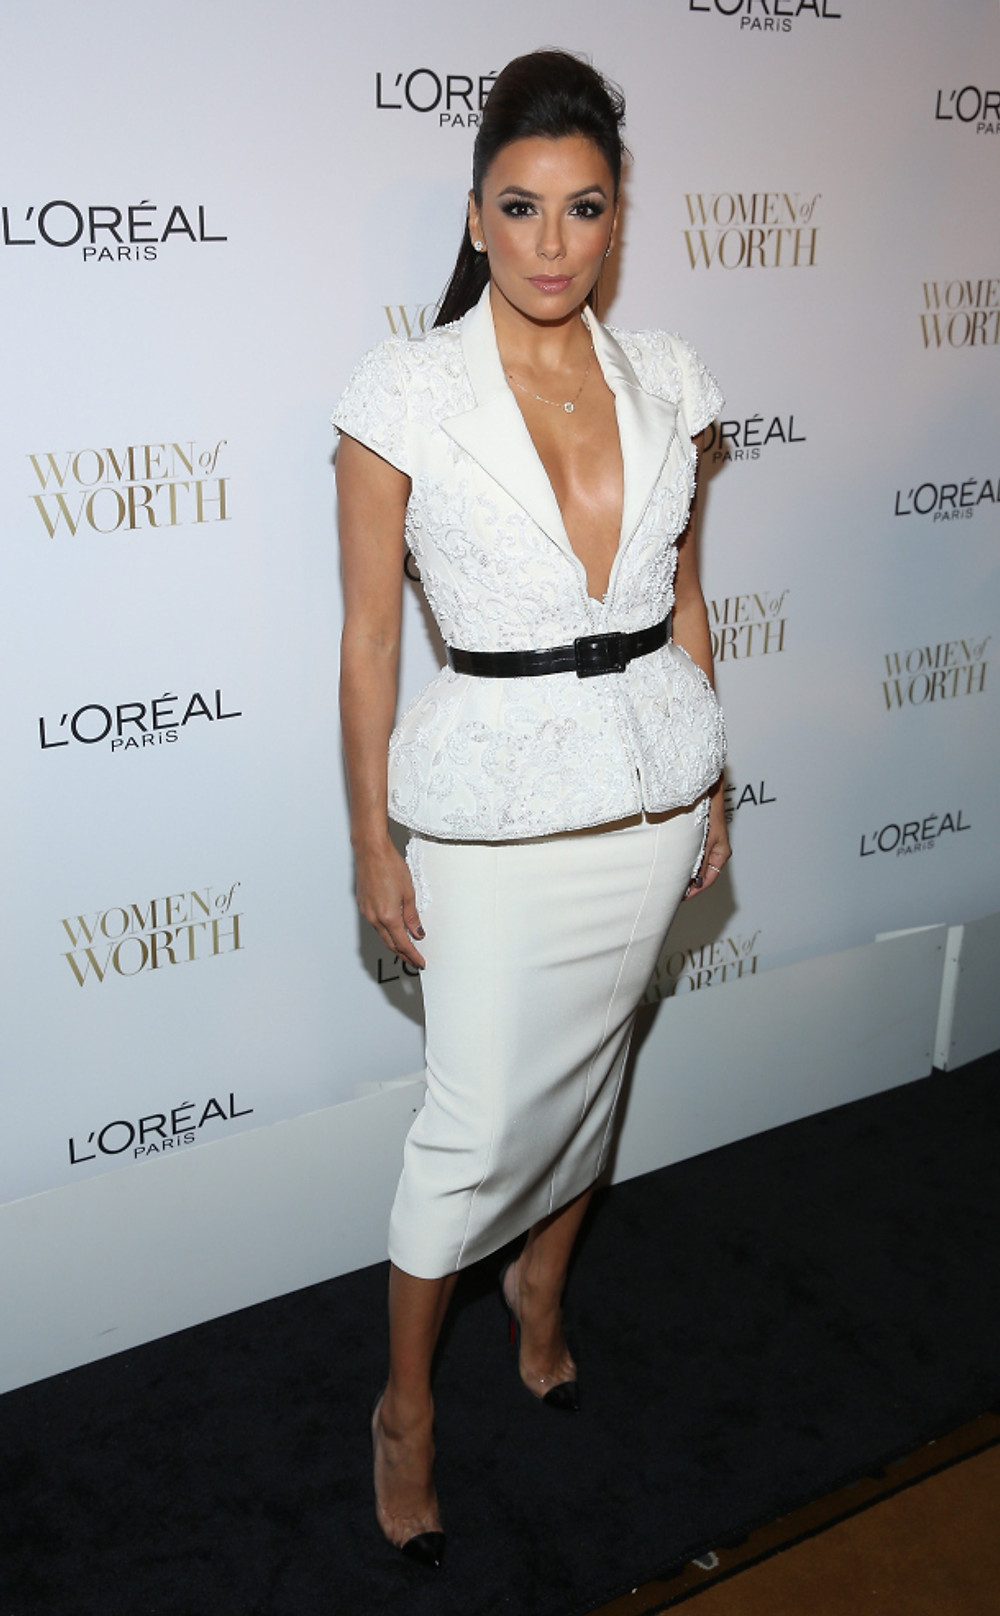 EVA LONGORIA WEARS RALPH & RUSSO COUTURE TO L'OREAL WOMEN OF WORTH